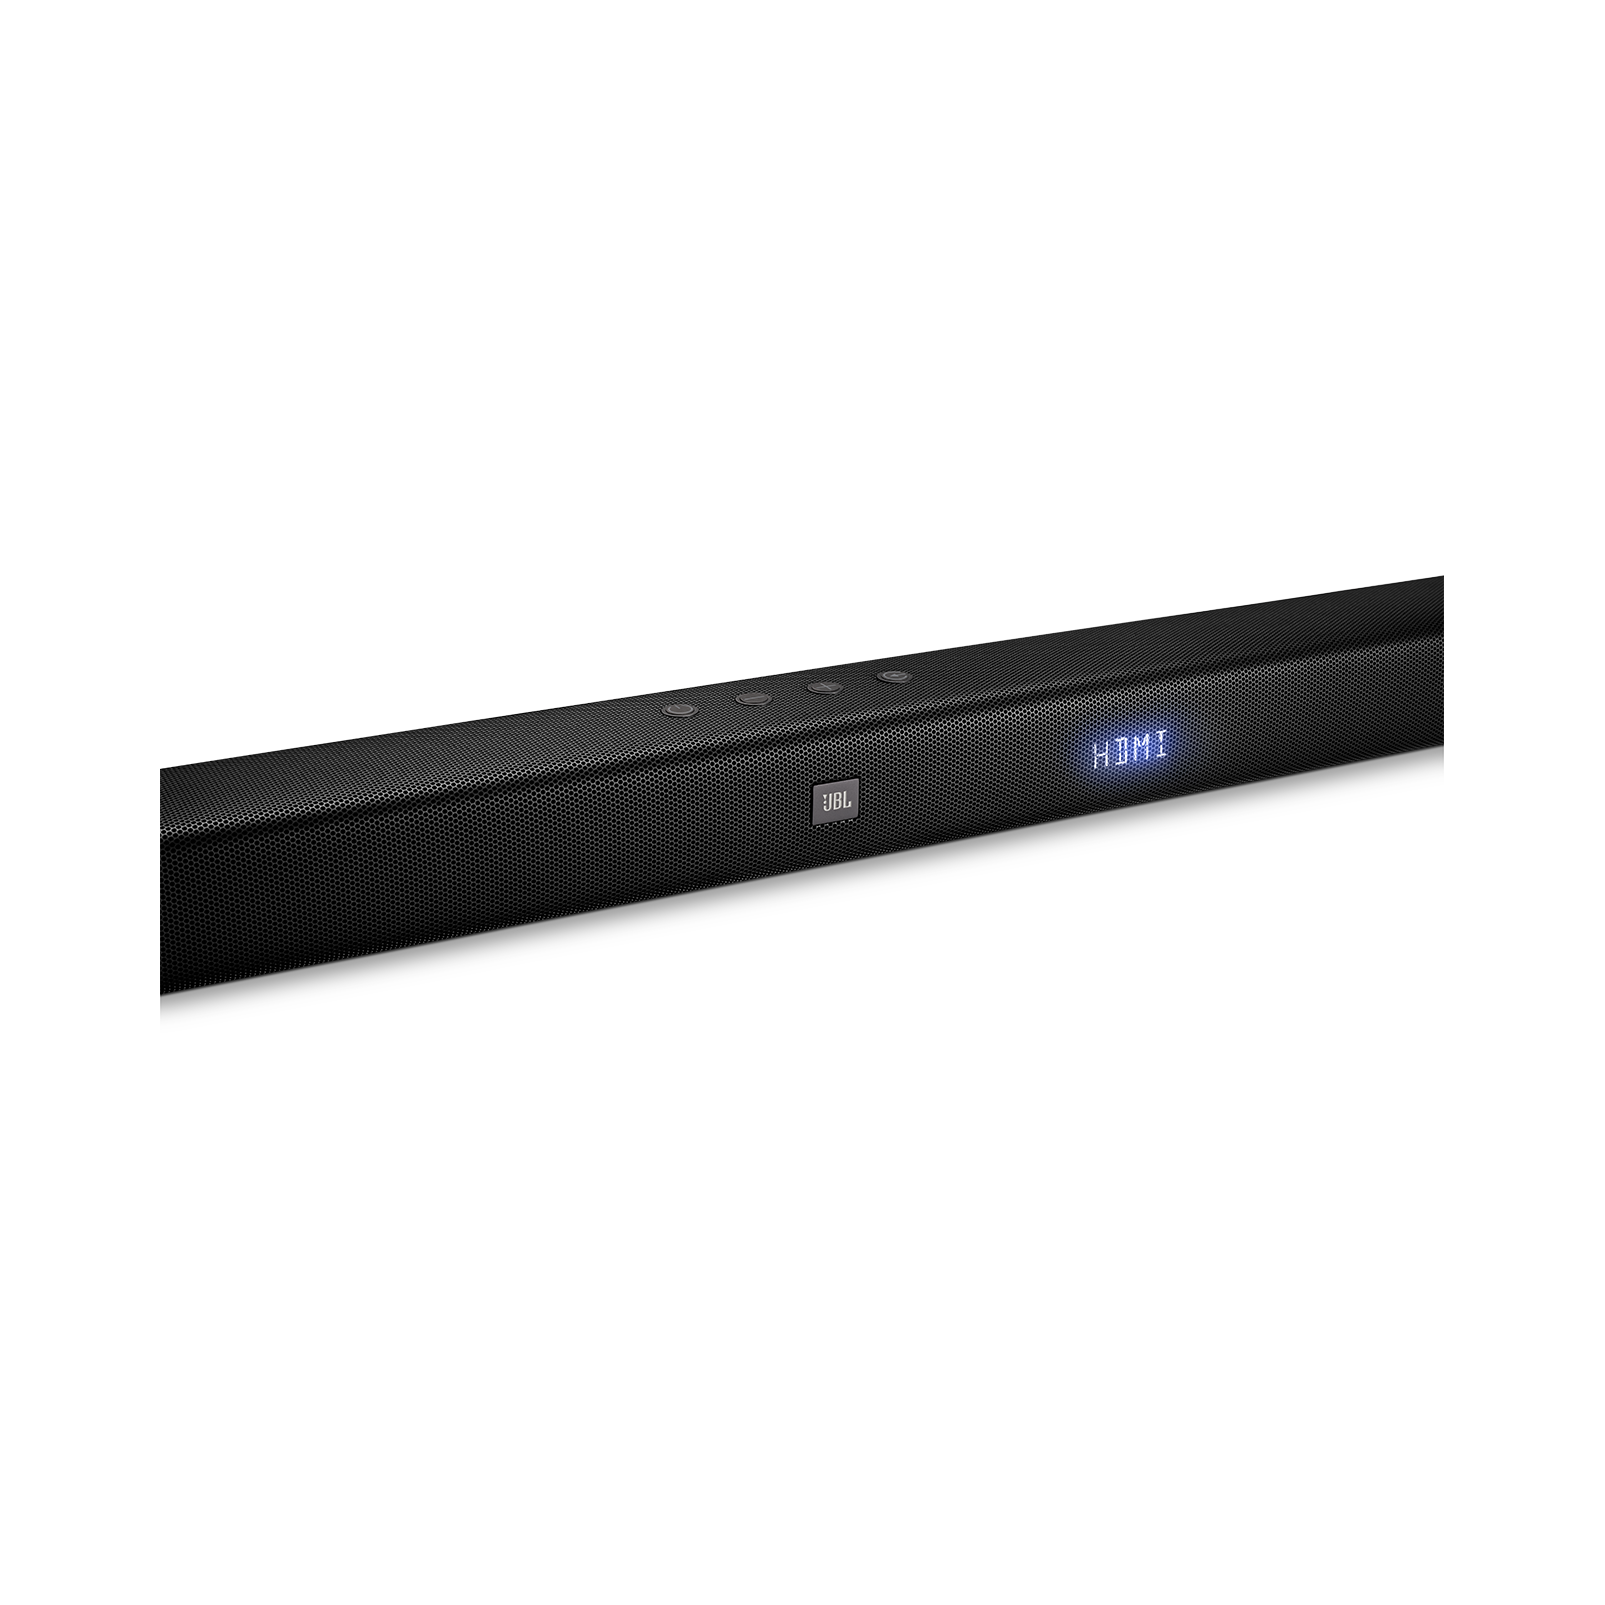 JBL Bar 2.1 - Black - 2.1-Channel Soundbar with Wireless Subwoofer - Detailshot 2